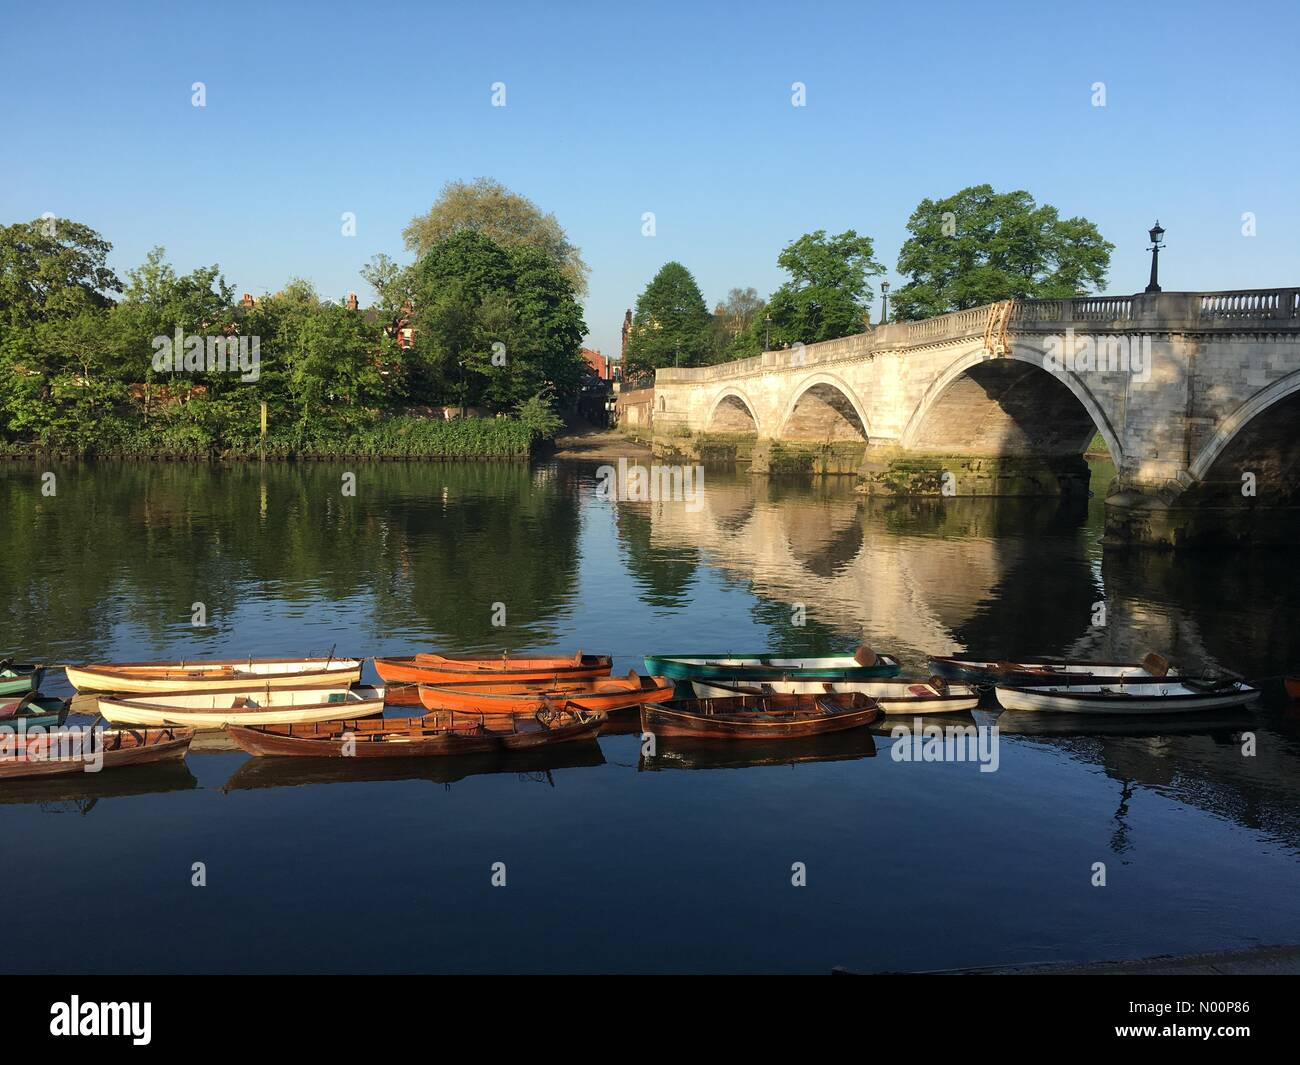 richmond-upon-thames-uk-weather-8-may-20